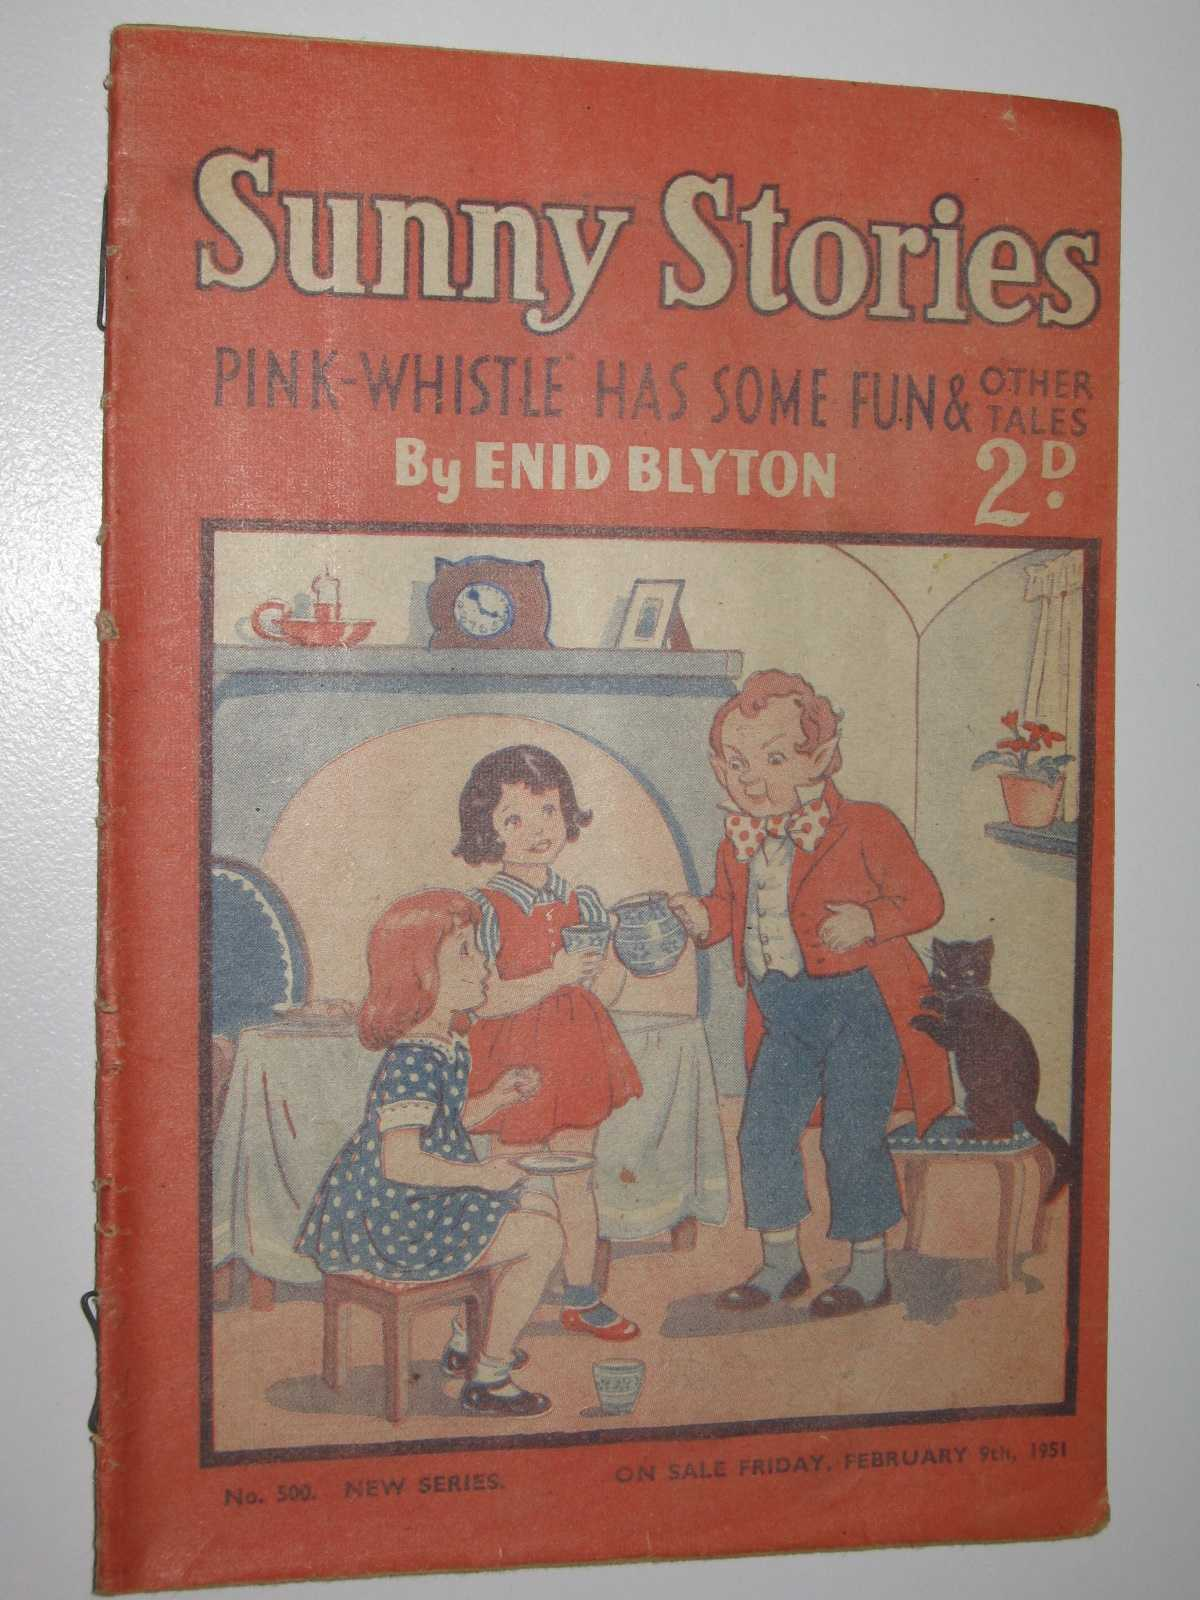 Image for Sunny Stories No. 500 New Series : Pink-Whistle Has Some Fun & Other Tales